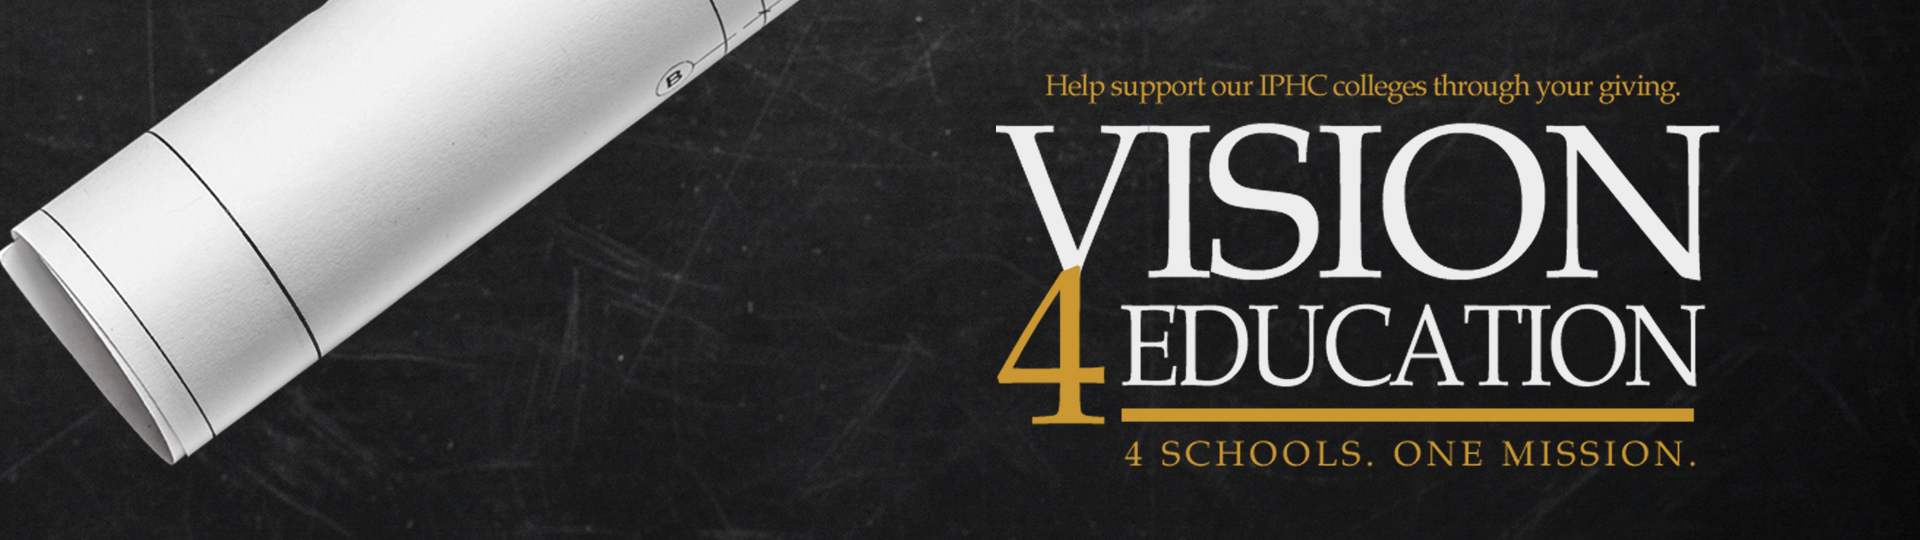 Vision for Education